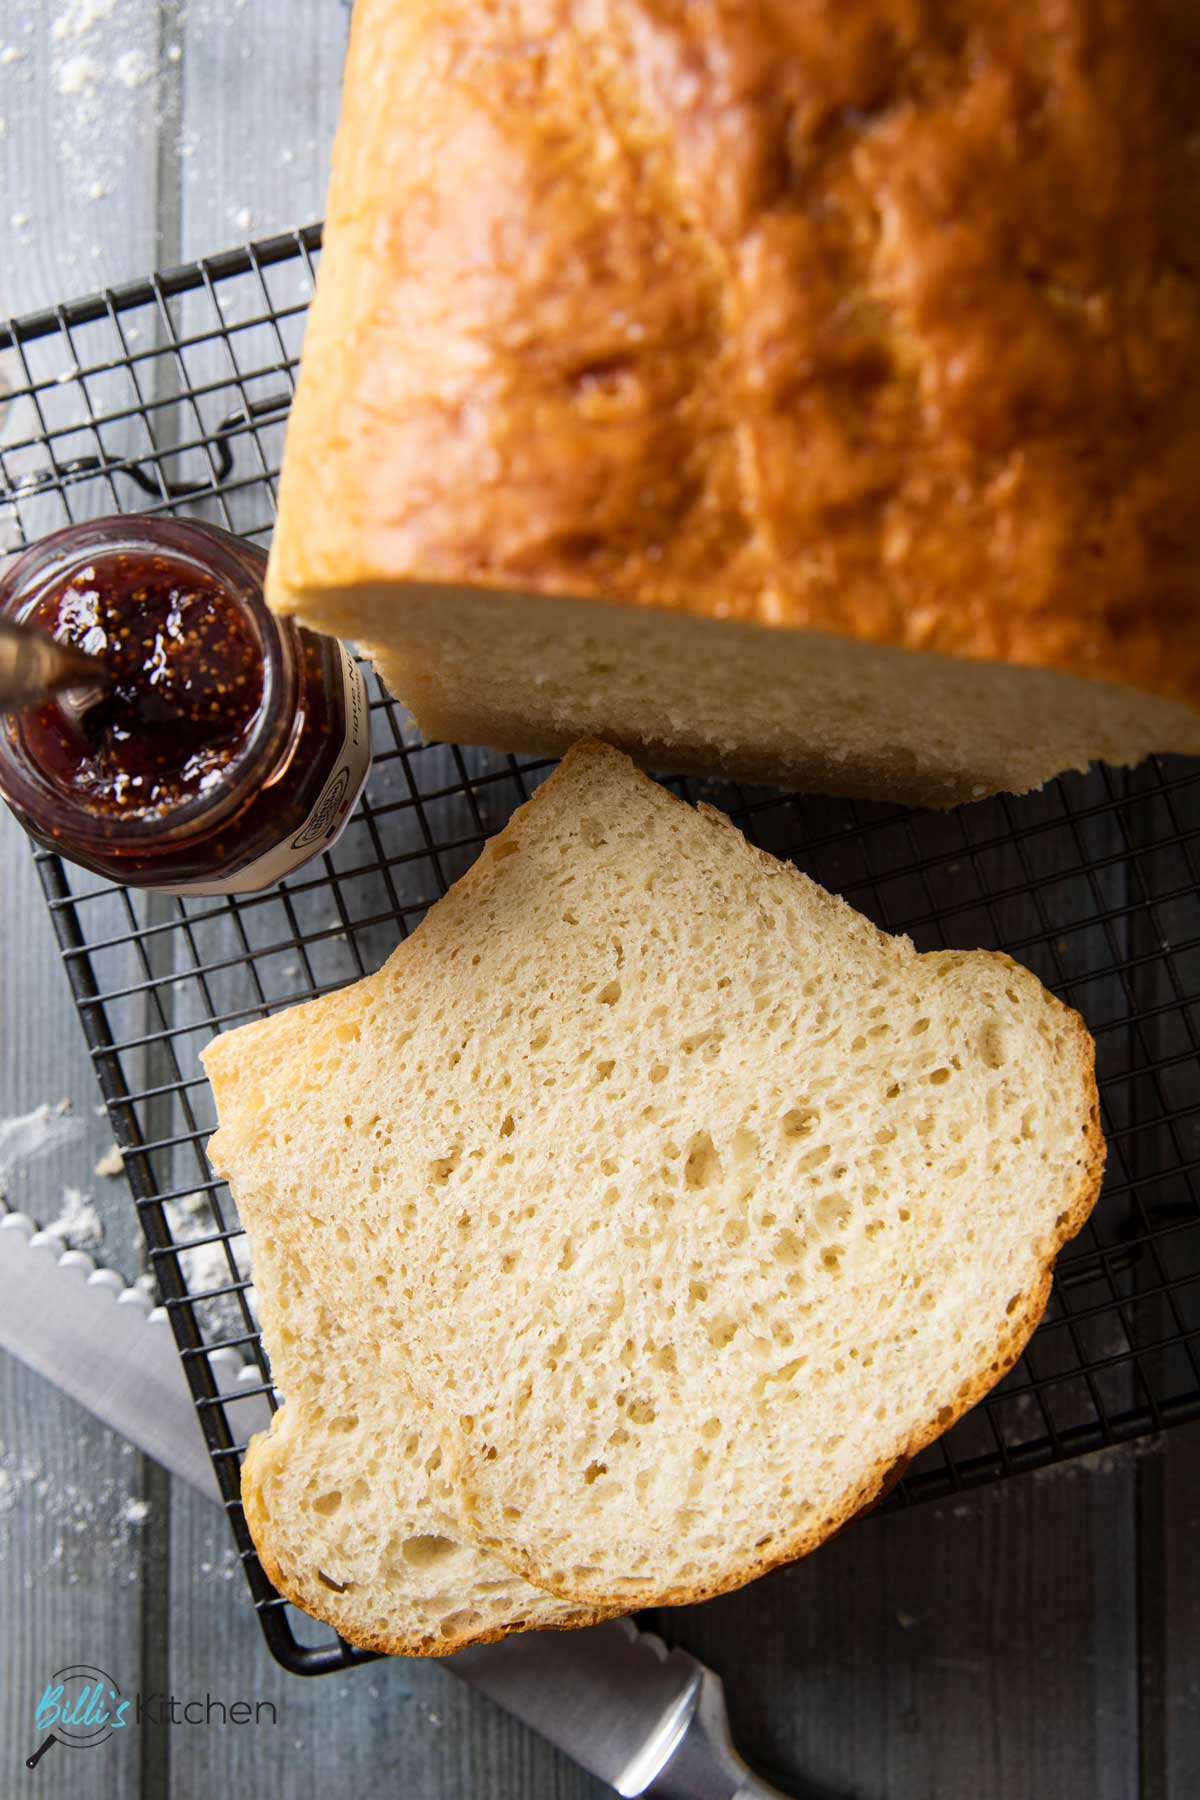 An overhead shot of a couple of slices of homemade white bread, with a bottle of jam on the side, ready for spreading on the bread.